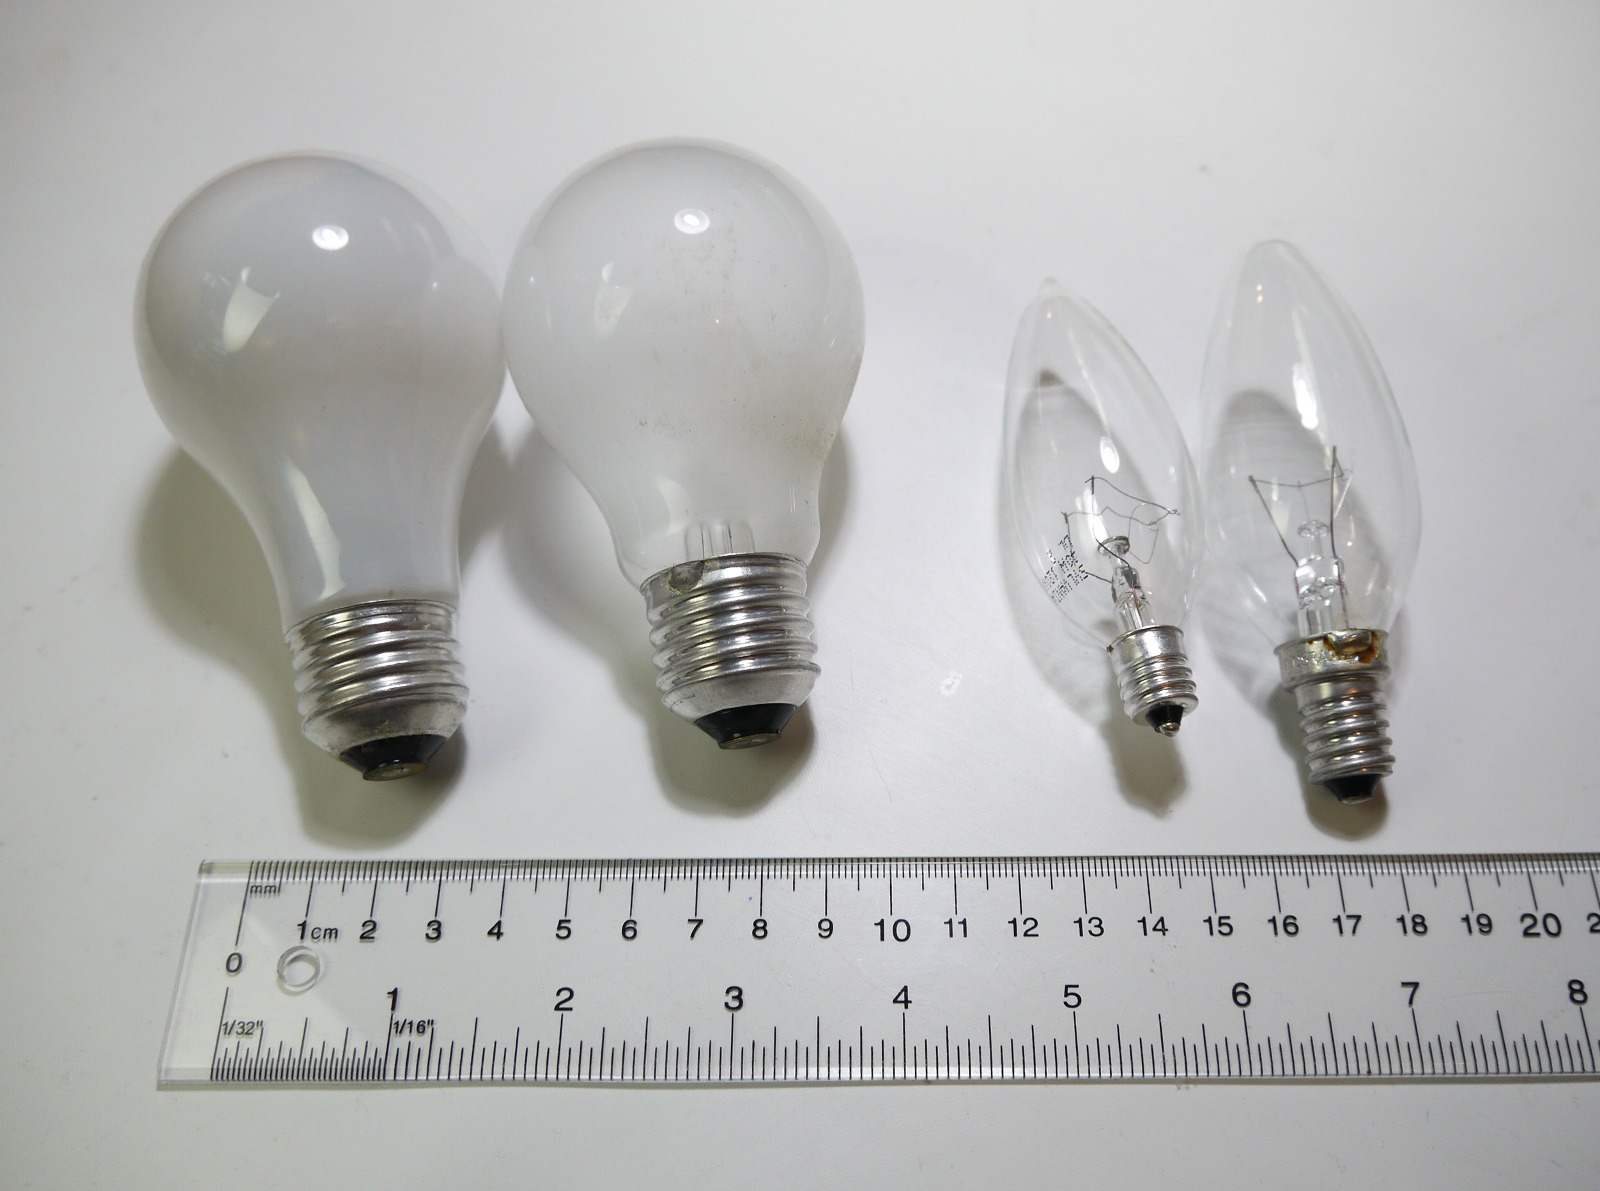 Light fixtures and light bulb sizes four of the most common light bulbs us a19 with e26 european e27 us b10 with e12 european e14 biocorpaavc